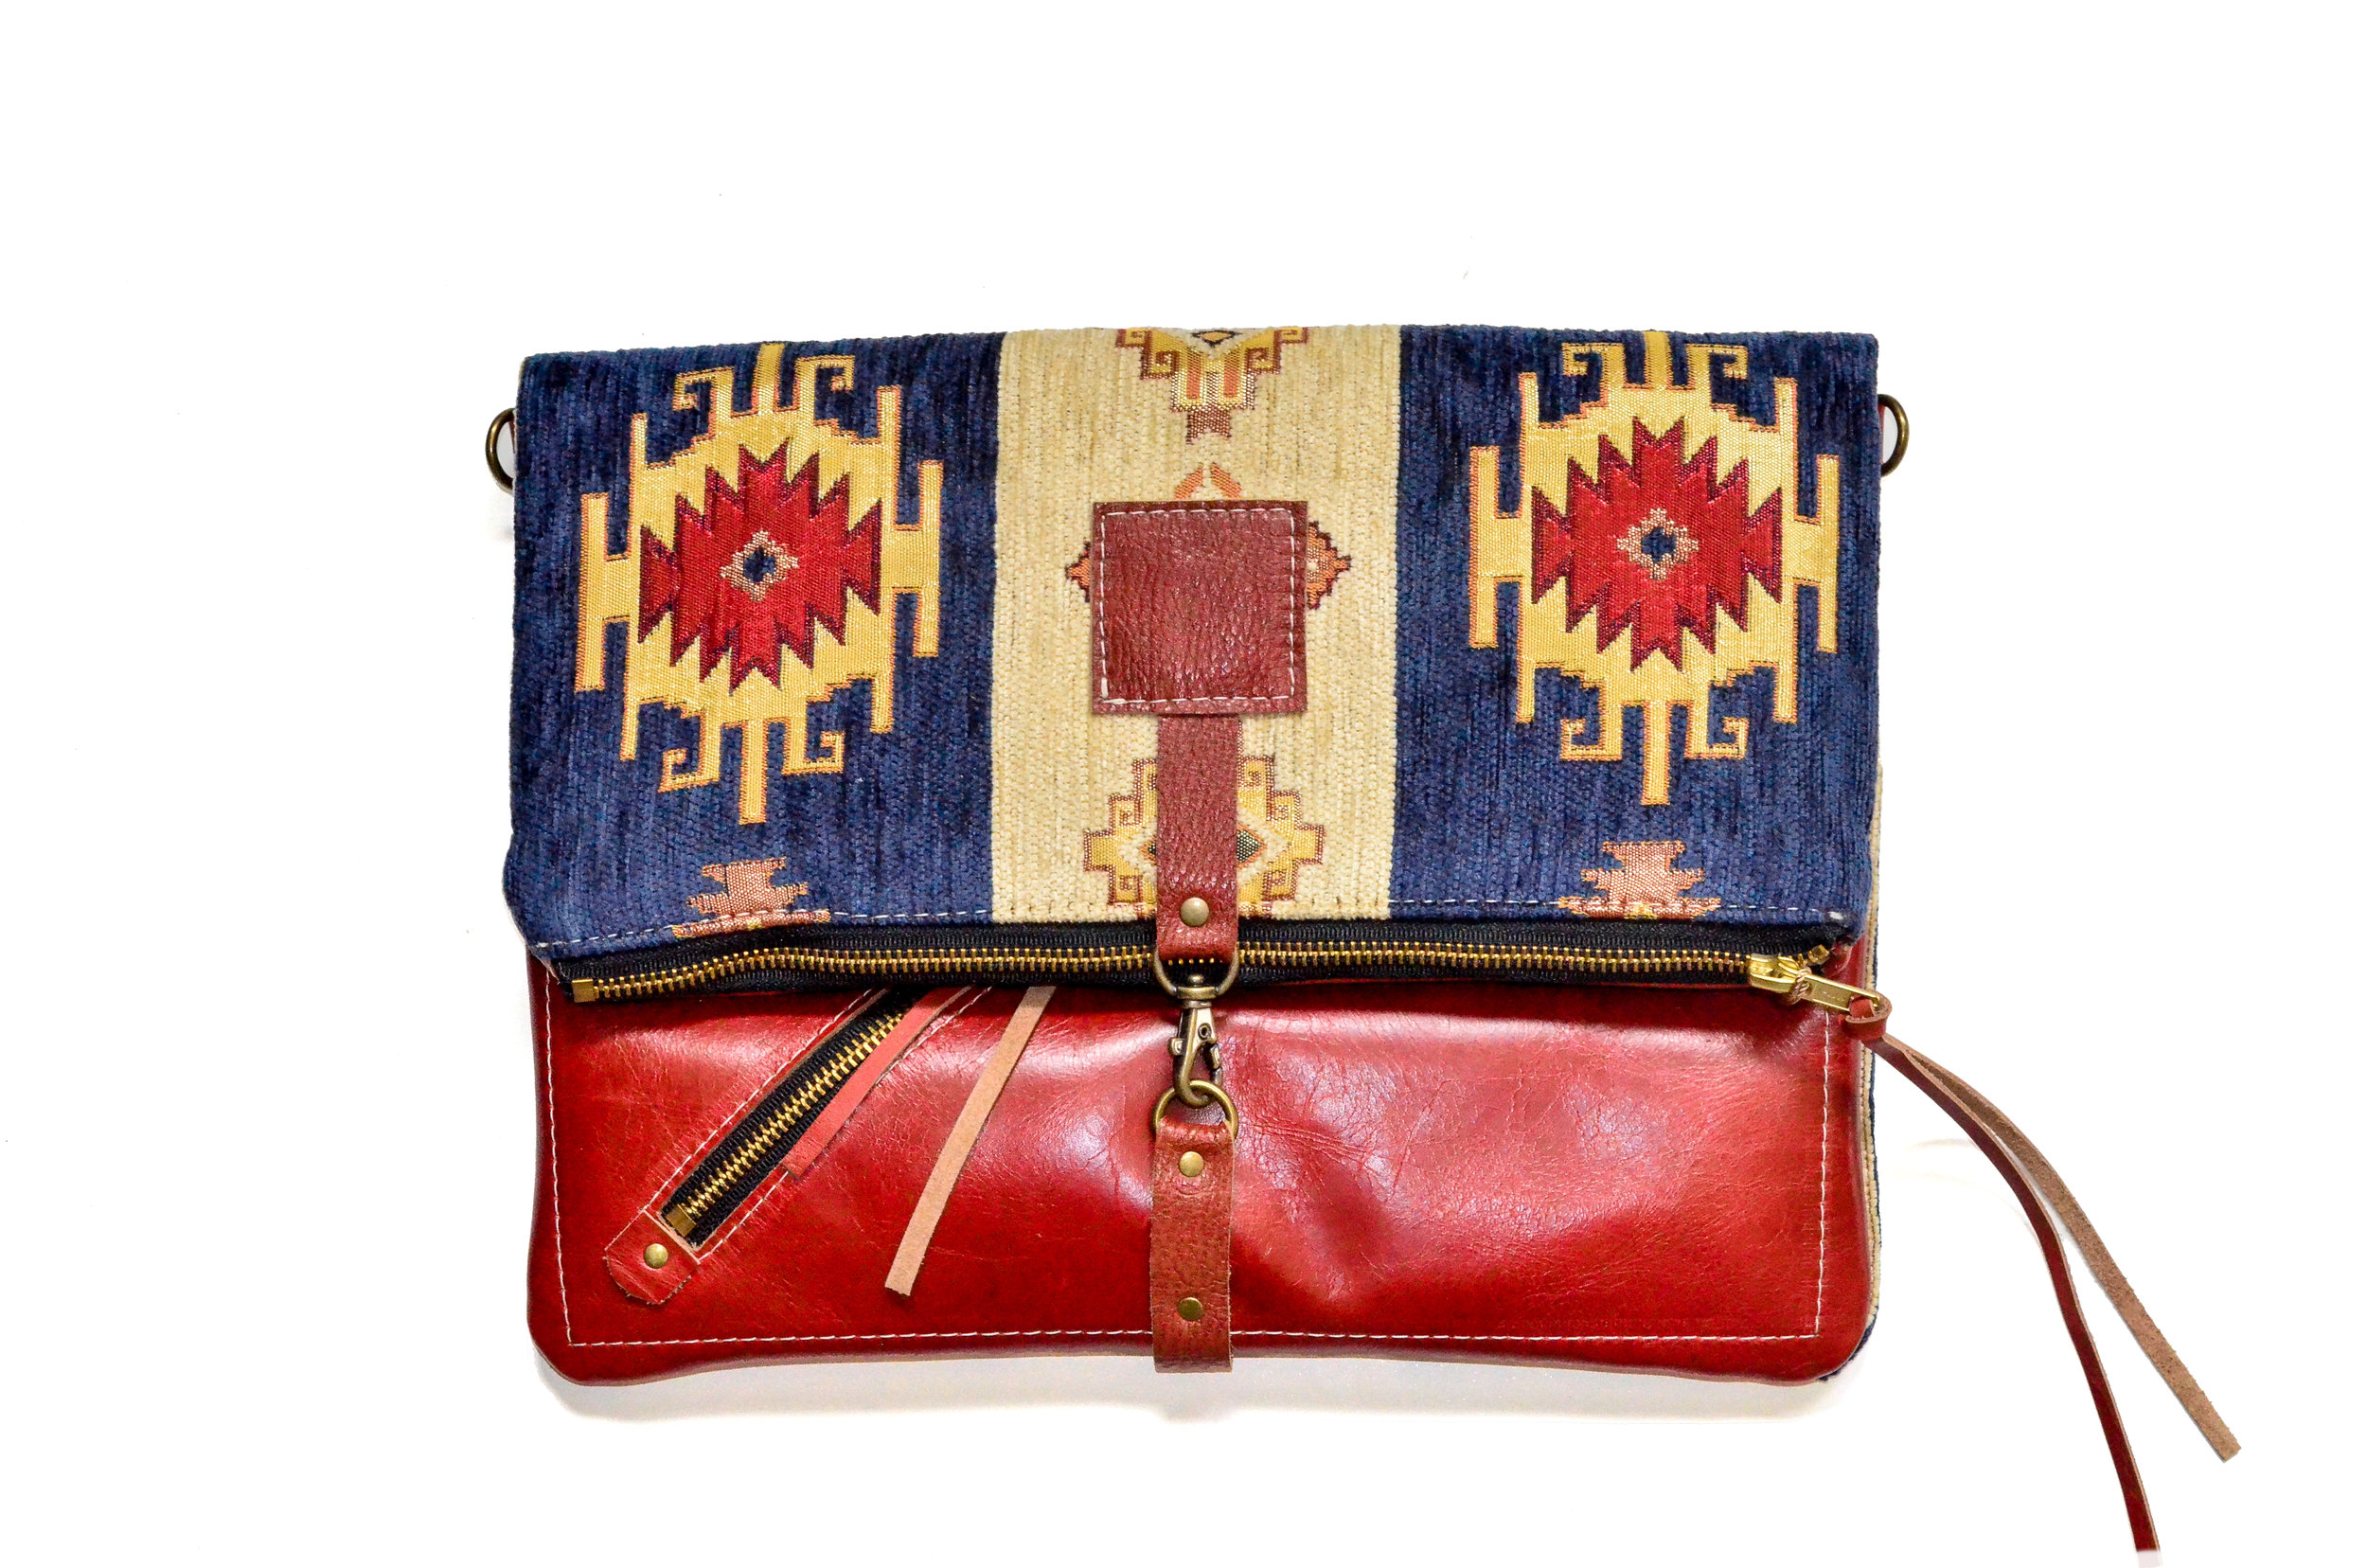 The Gypsy Clutch from Vital Temptations